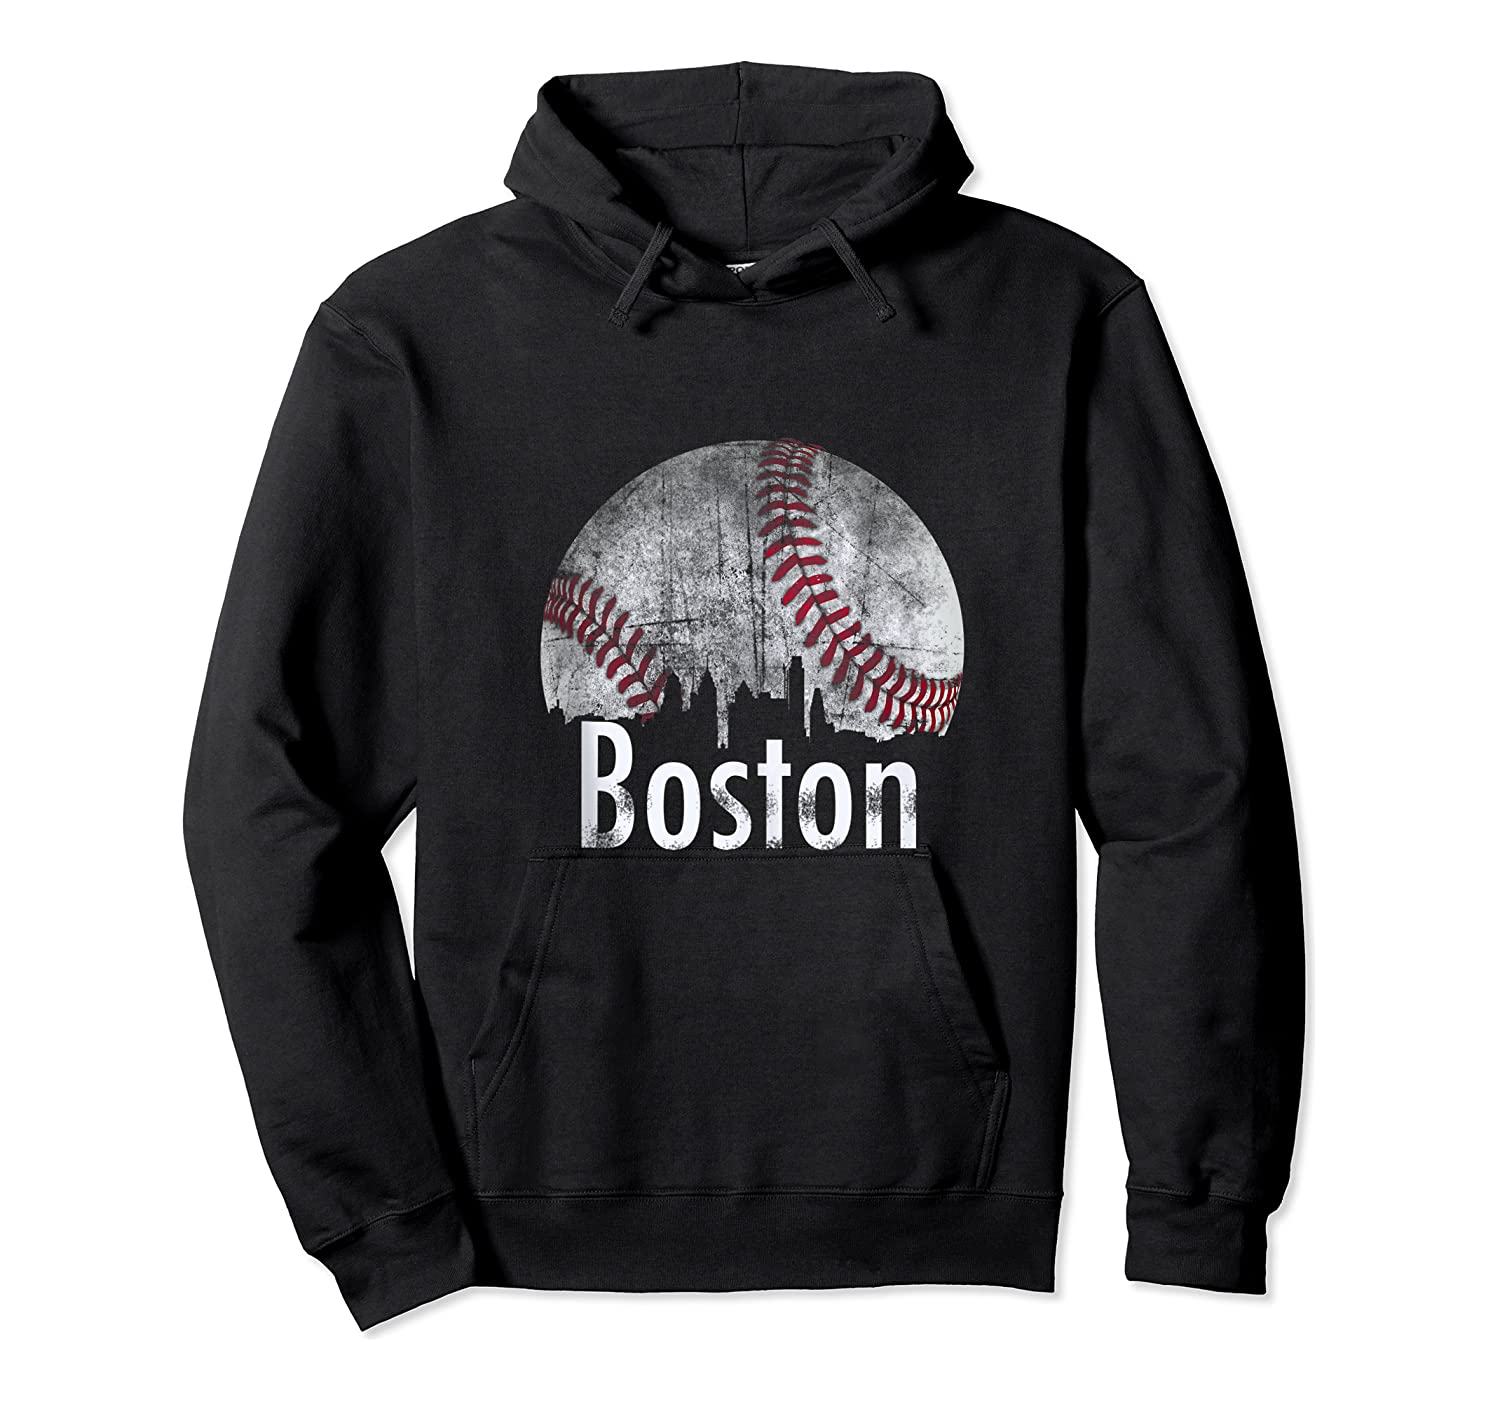 Vintage Boston Baseball Gifts Red Skyline Classic City Tank Top Shirts Unisex Pullover Hoodie